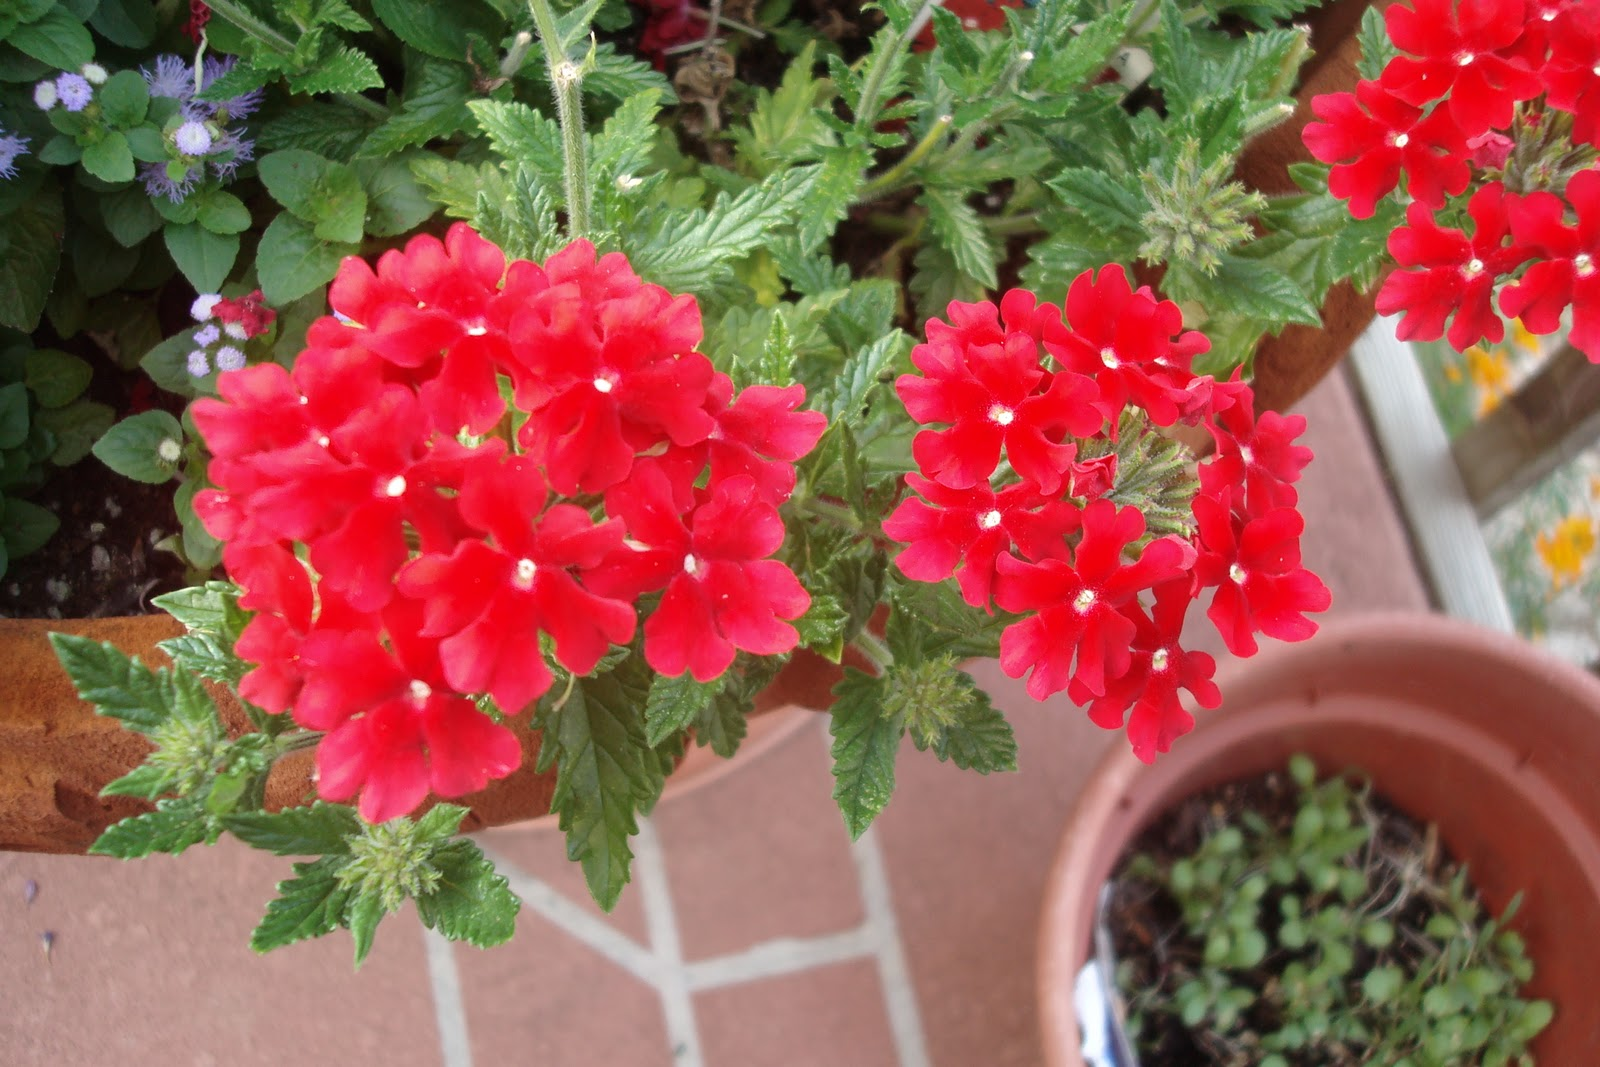 Flowers and Nature in my Garden: Potted Flowers